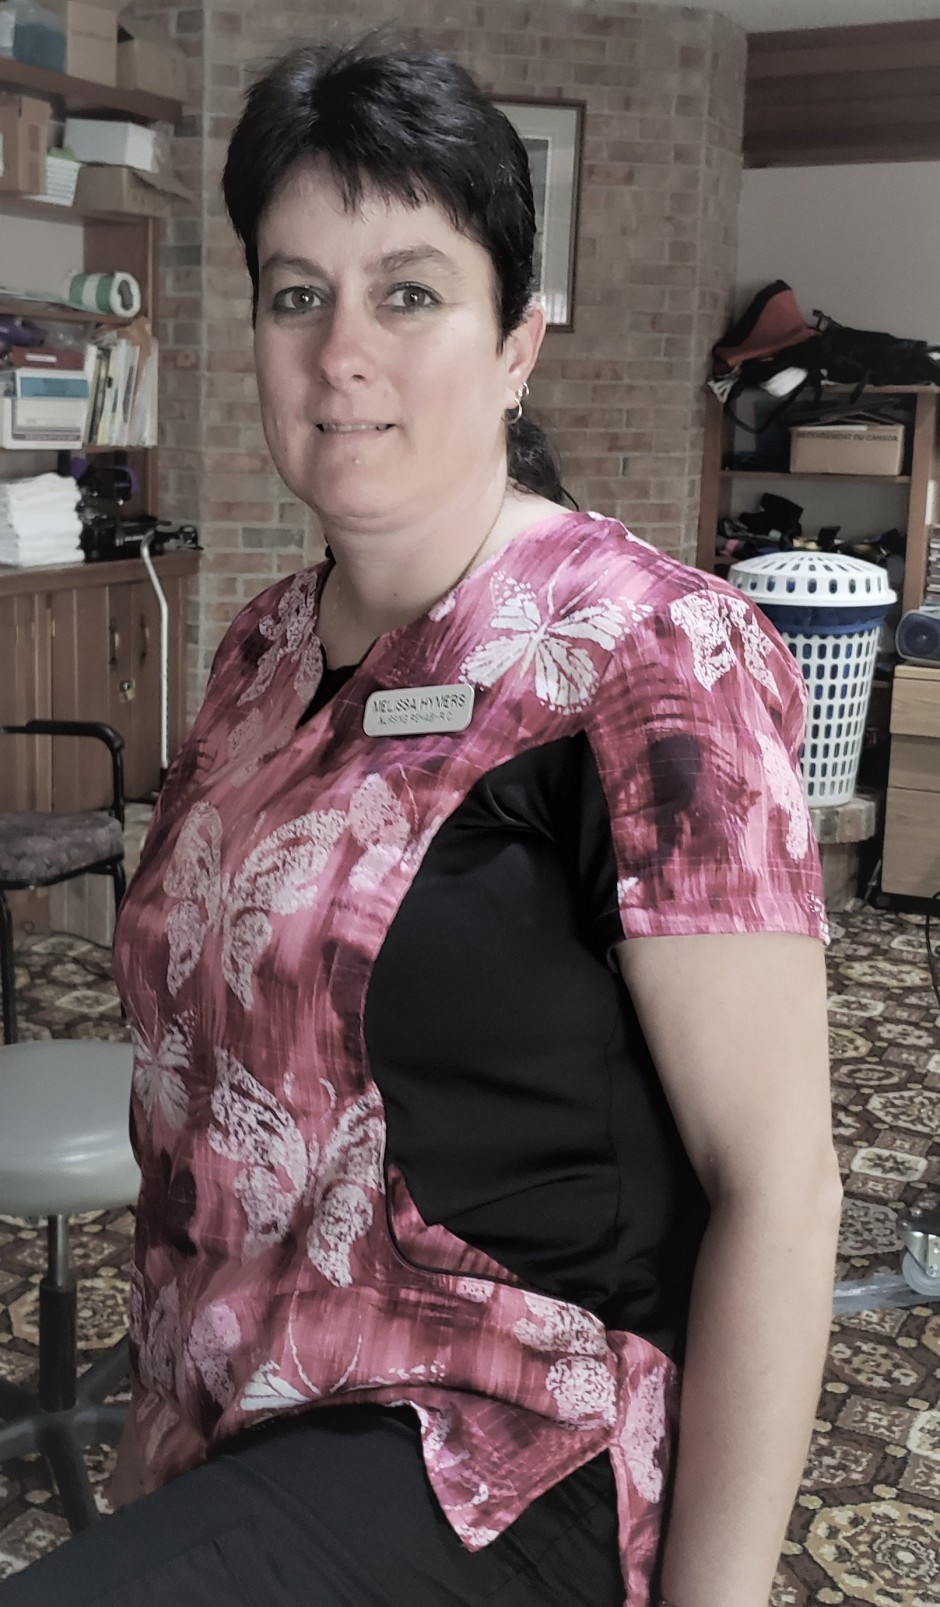 Portrait of personal support worker in pink butterfly print uniform